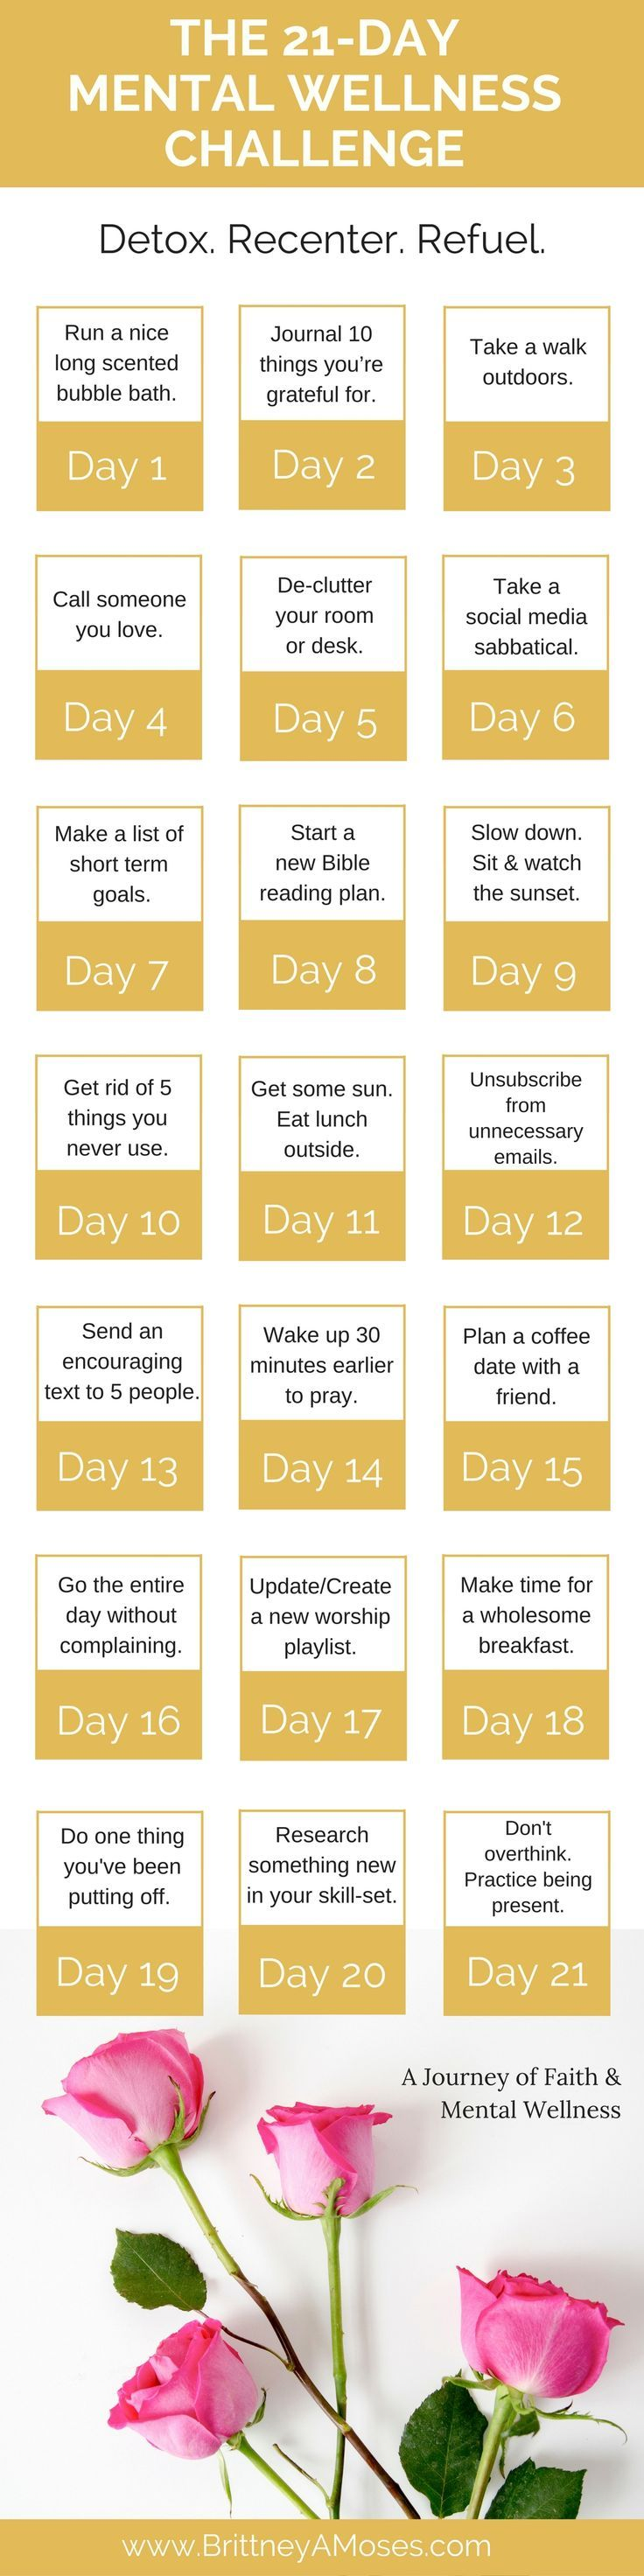 21-Day Mental Wellness Challenge! -Brittney Moses What a great thing! Let's do it!